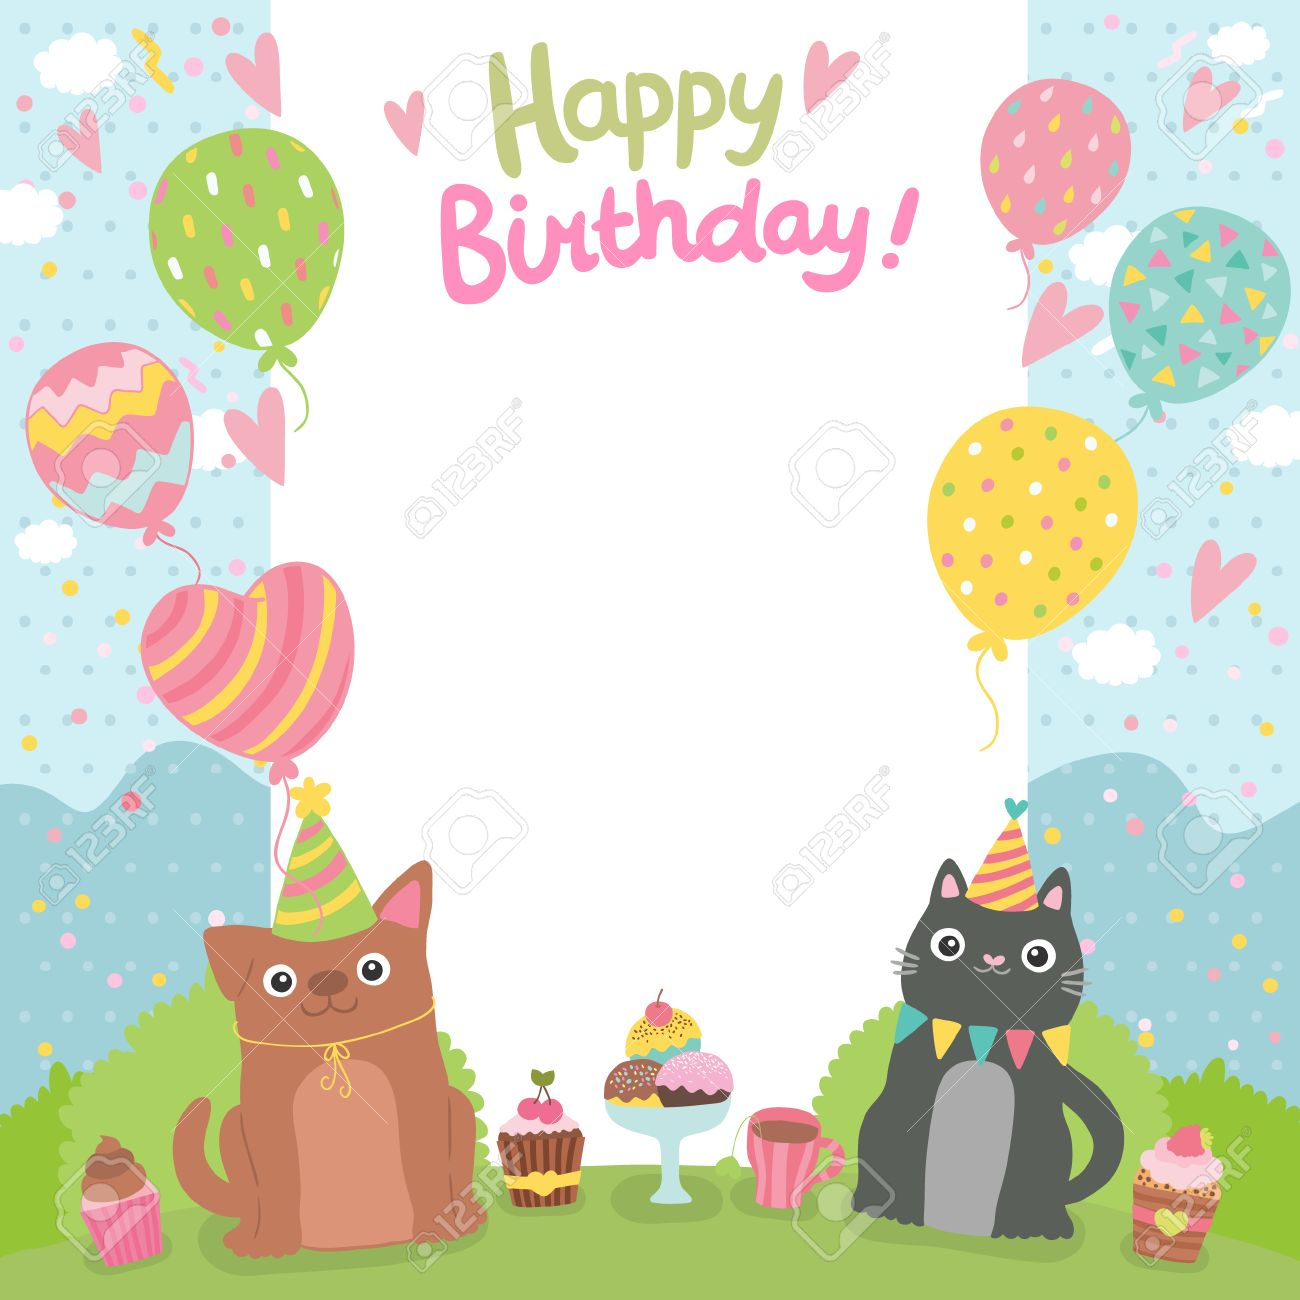 Merveilleux Happy Birthday Card Background Withdog And Cat. Vector Holiday Party  Template Stock Vector   29385358